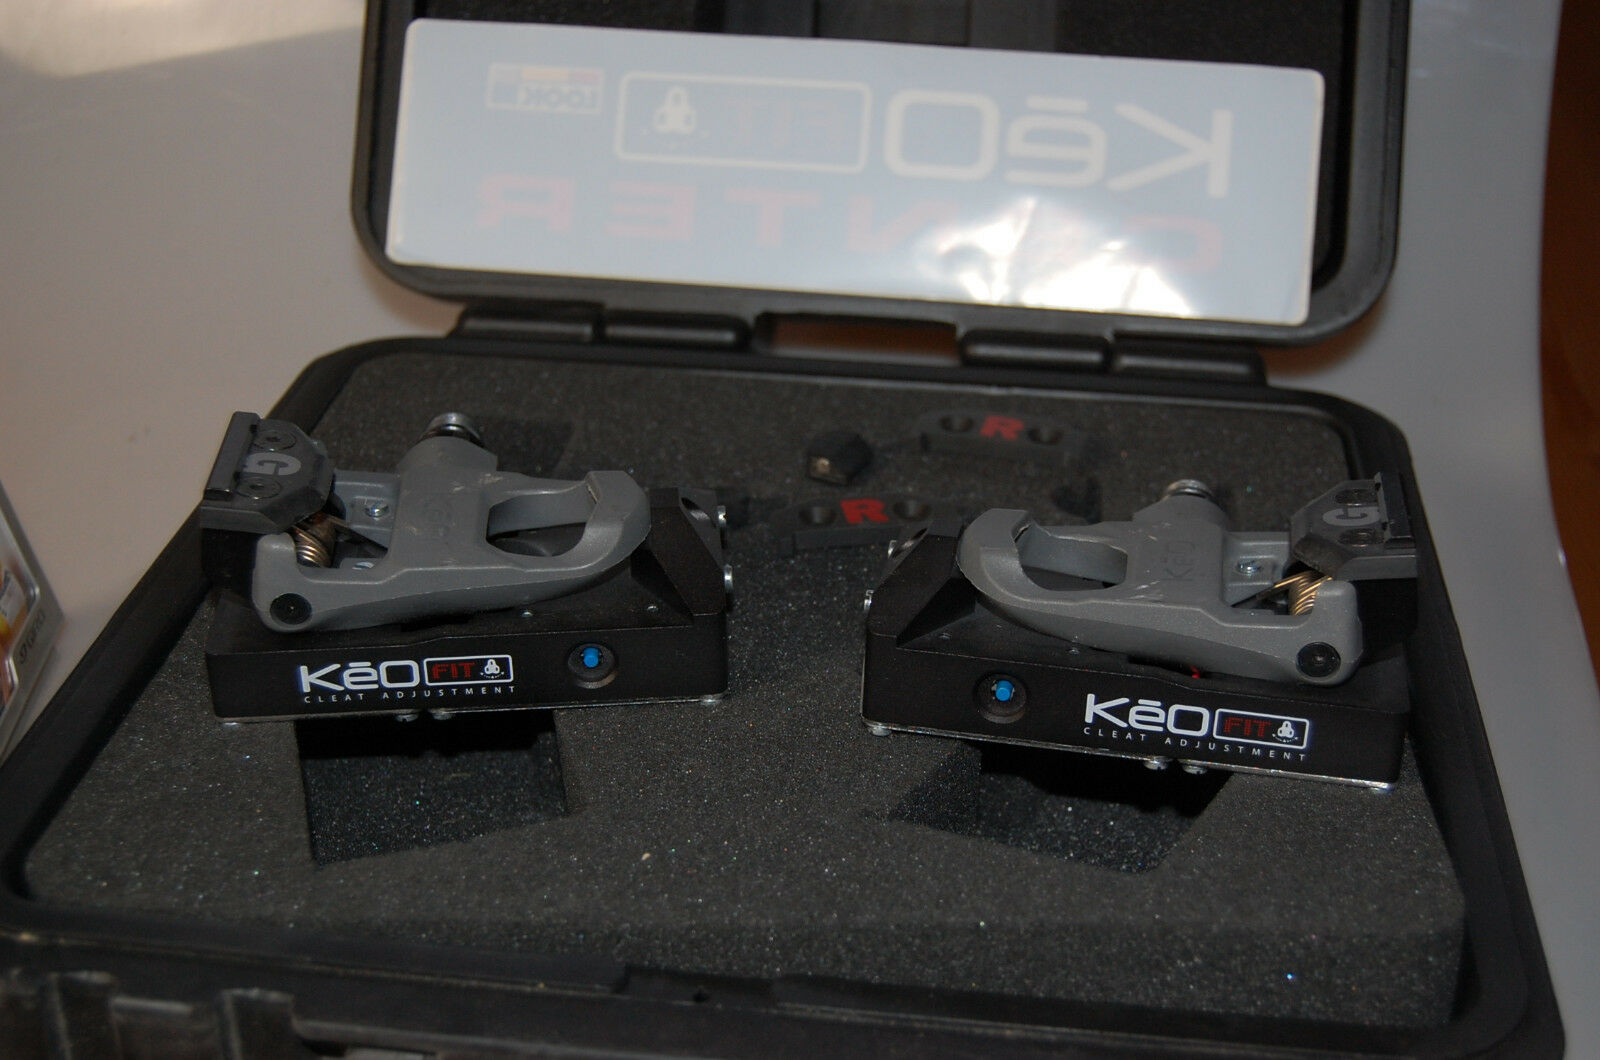 Look Keo Cleat fit adjustment-Suitcase